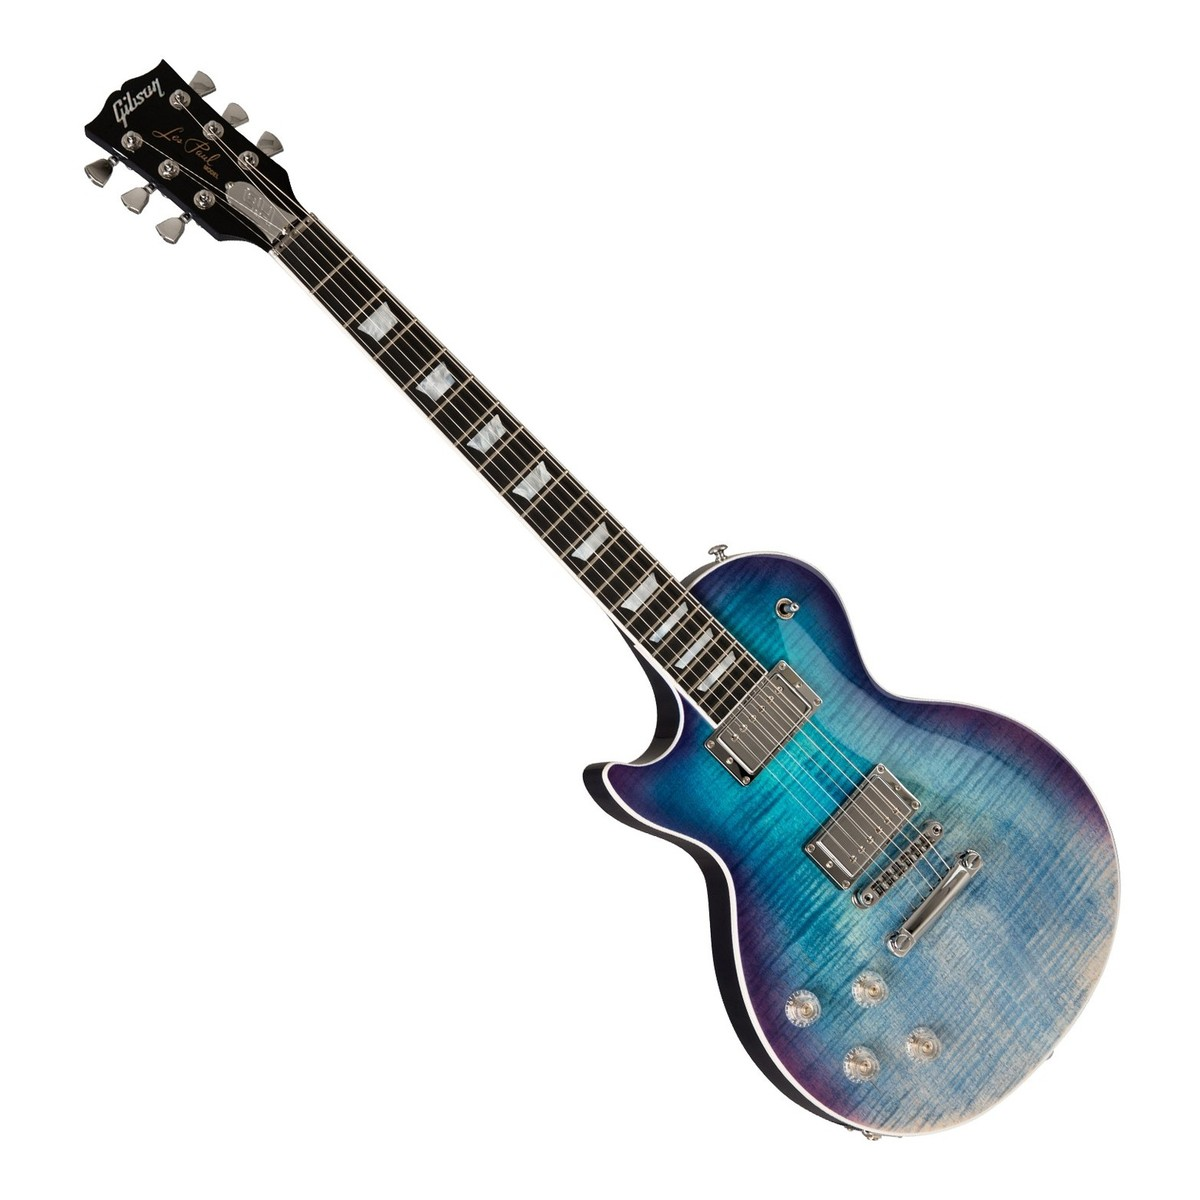 gibson les paul standard hp 2019 left handed blueberry fade at gear4music. Black Bedroom Furniture Sets. Home Design Ideas